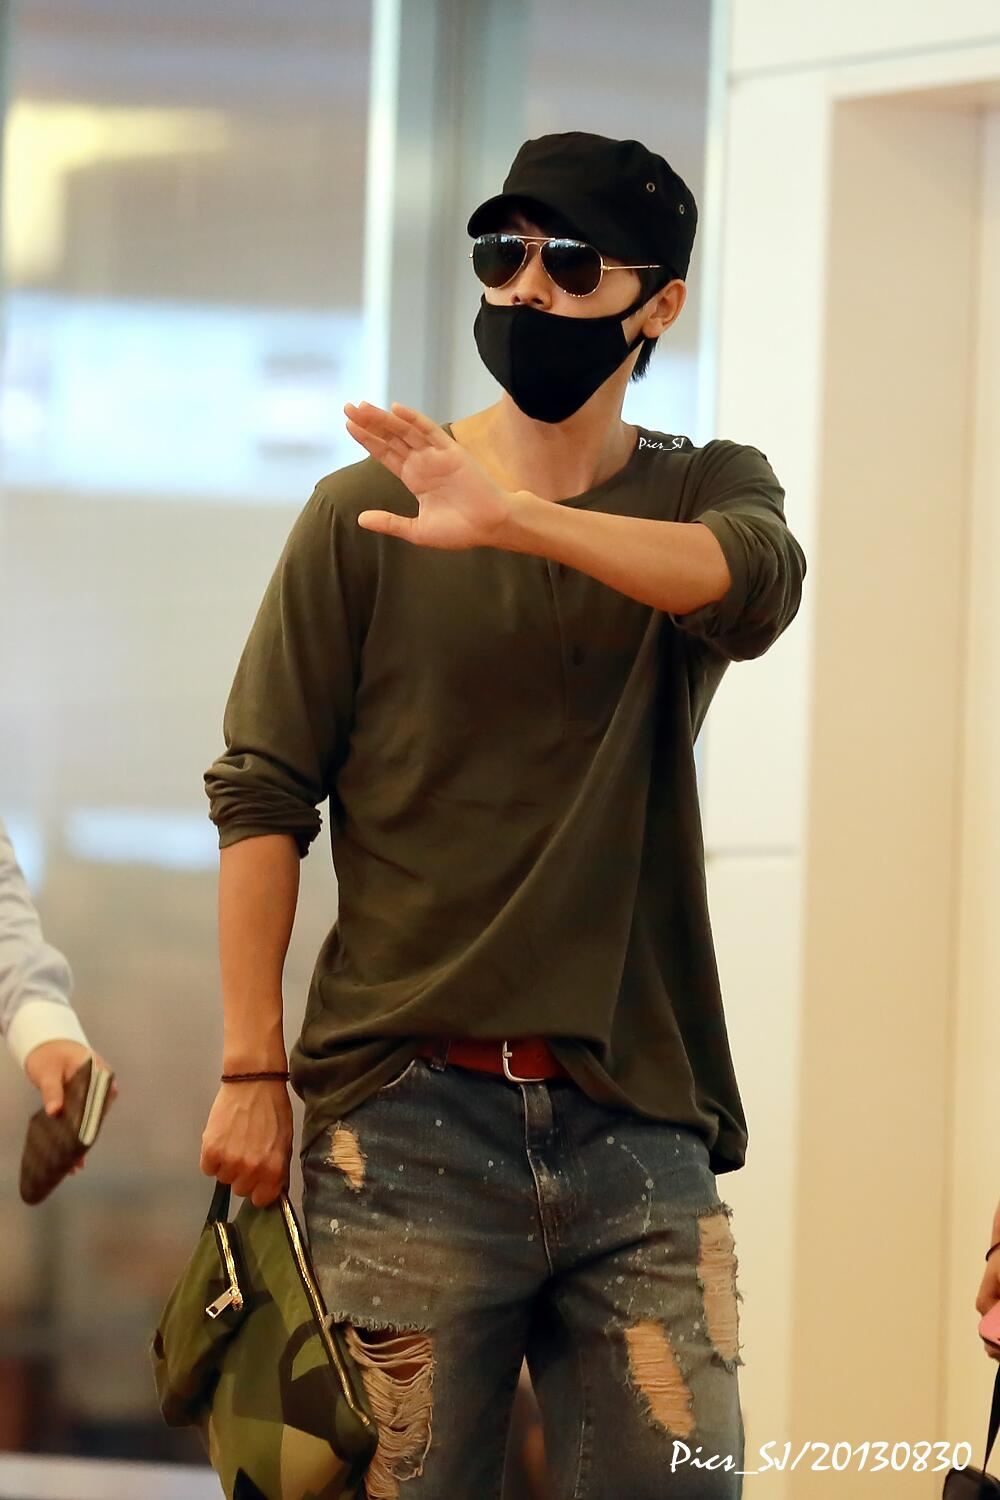 """So cool !! """"@pics_sj: [Pic]20130830 Haneda Airport #Donghae #SUPERJUNIOR http://t.co/sSNuH3ZbUB"""""""